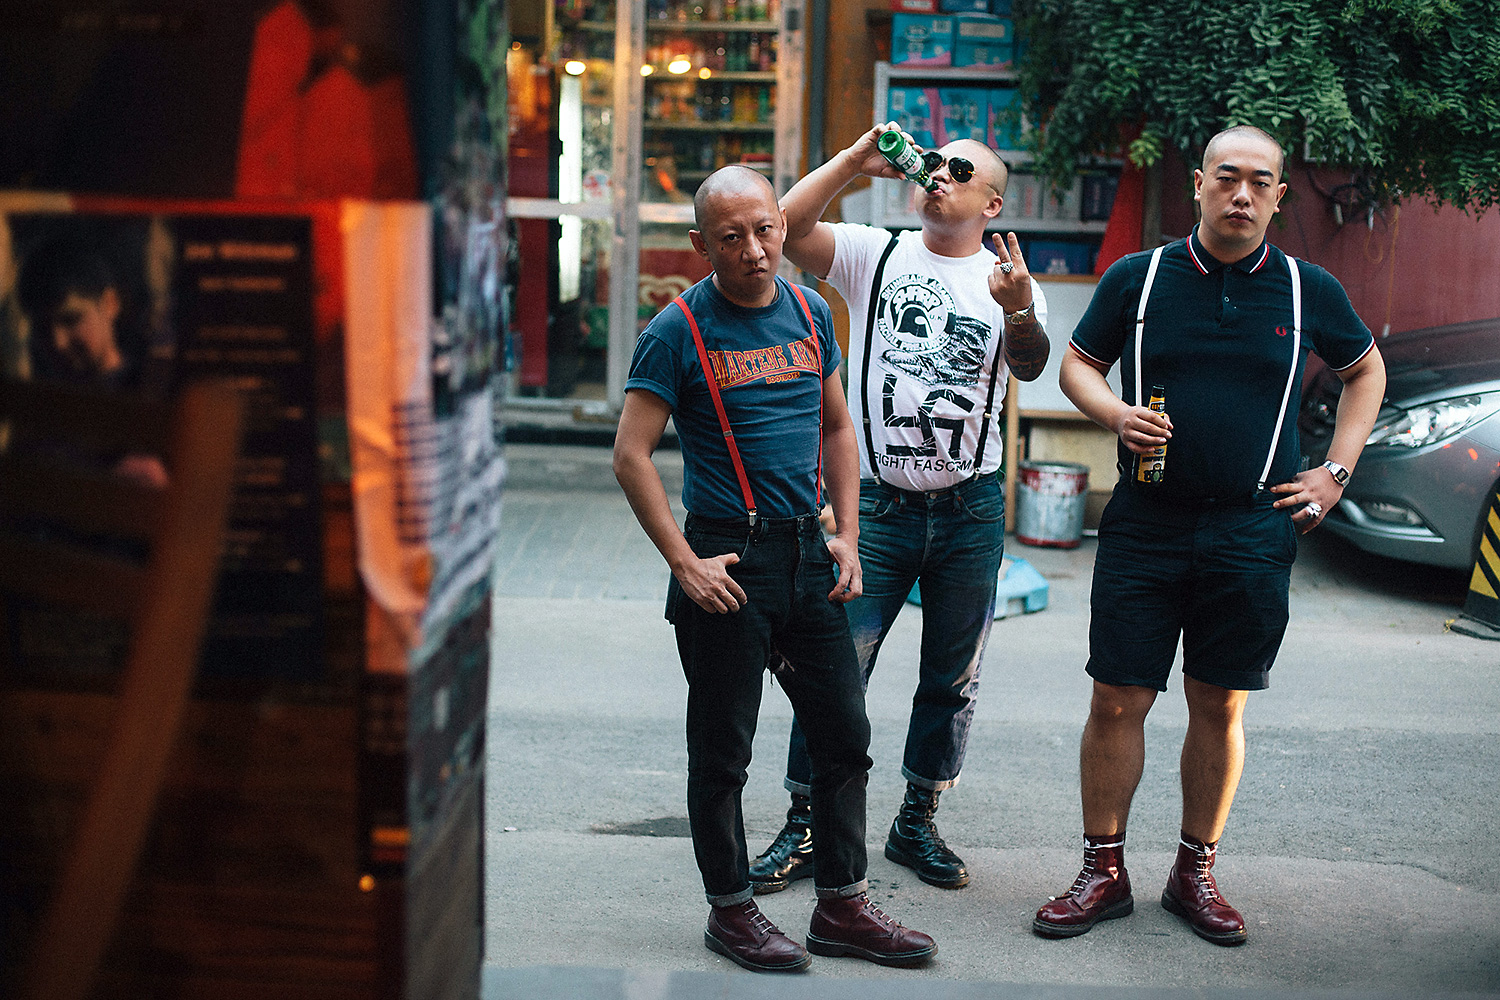 Ma Ke a.k.a. 'Mr. Ma,' Yan Lei a.k.a. 'Bangbang,' and 'TM©' pose on a Beijing street for a portrait. (TM© asked not to reveal his real name.) Bangbang flashes a 'V' in defiance while wearing a t-shirt from the anti-fascist punk movement Skinheads Against Racial Prejudice (SHARP), that depicts a punk-rock favorite Dr. Martens boot stomping a Nazi swastika.